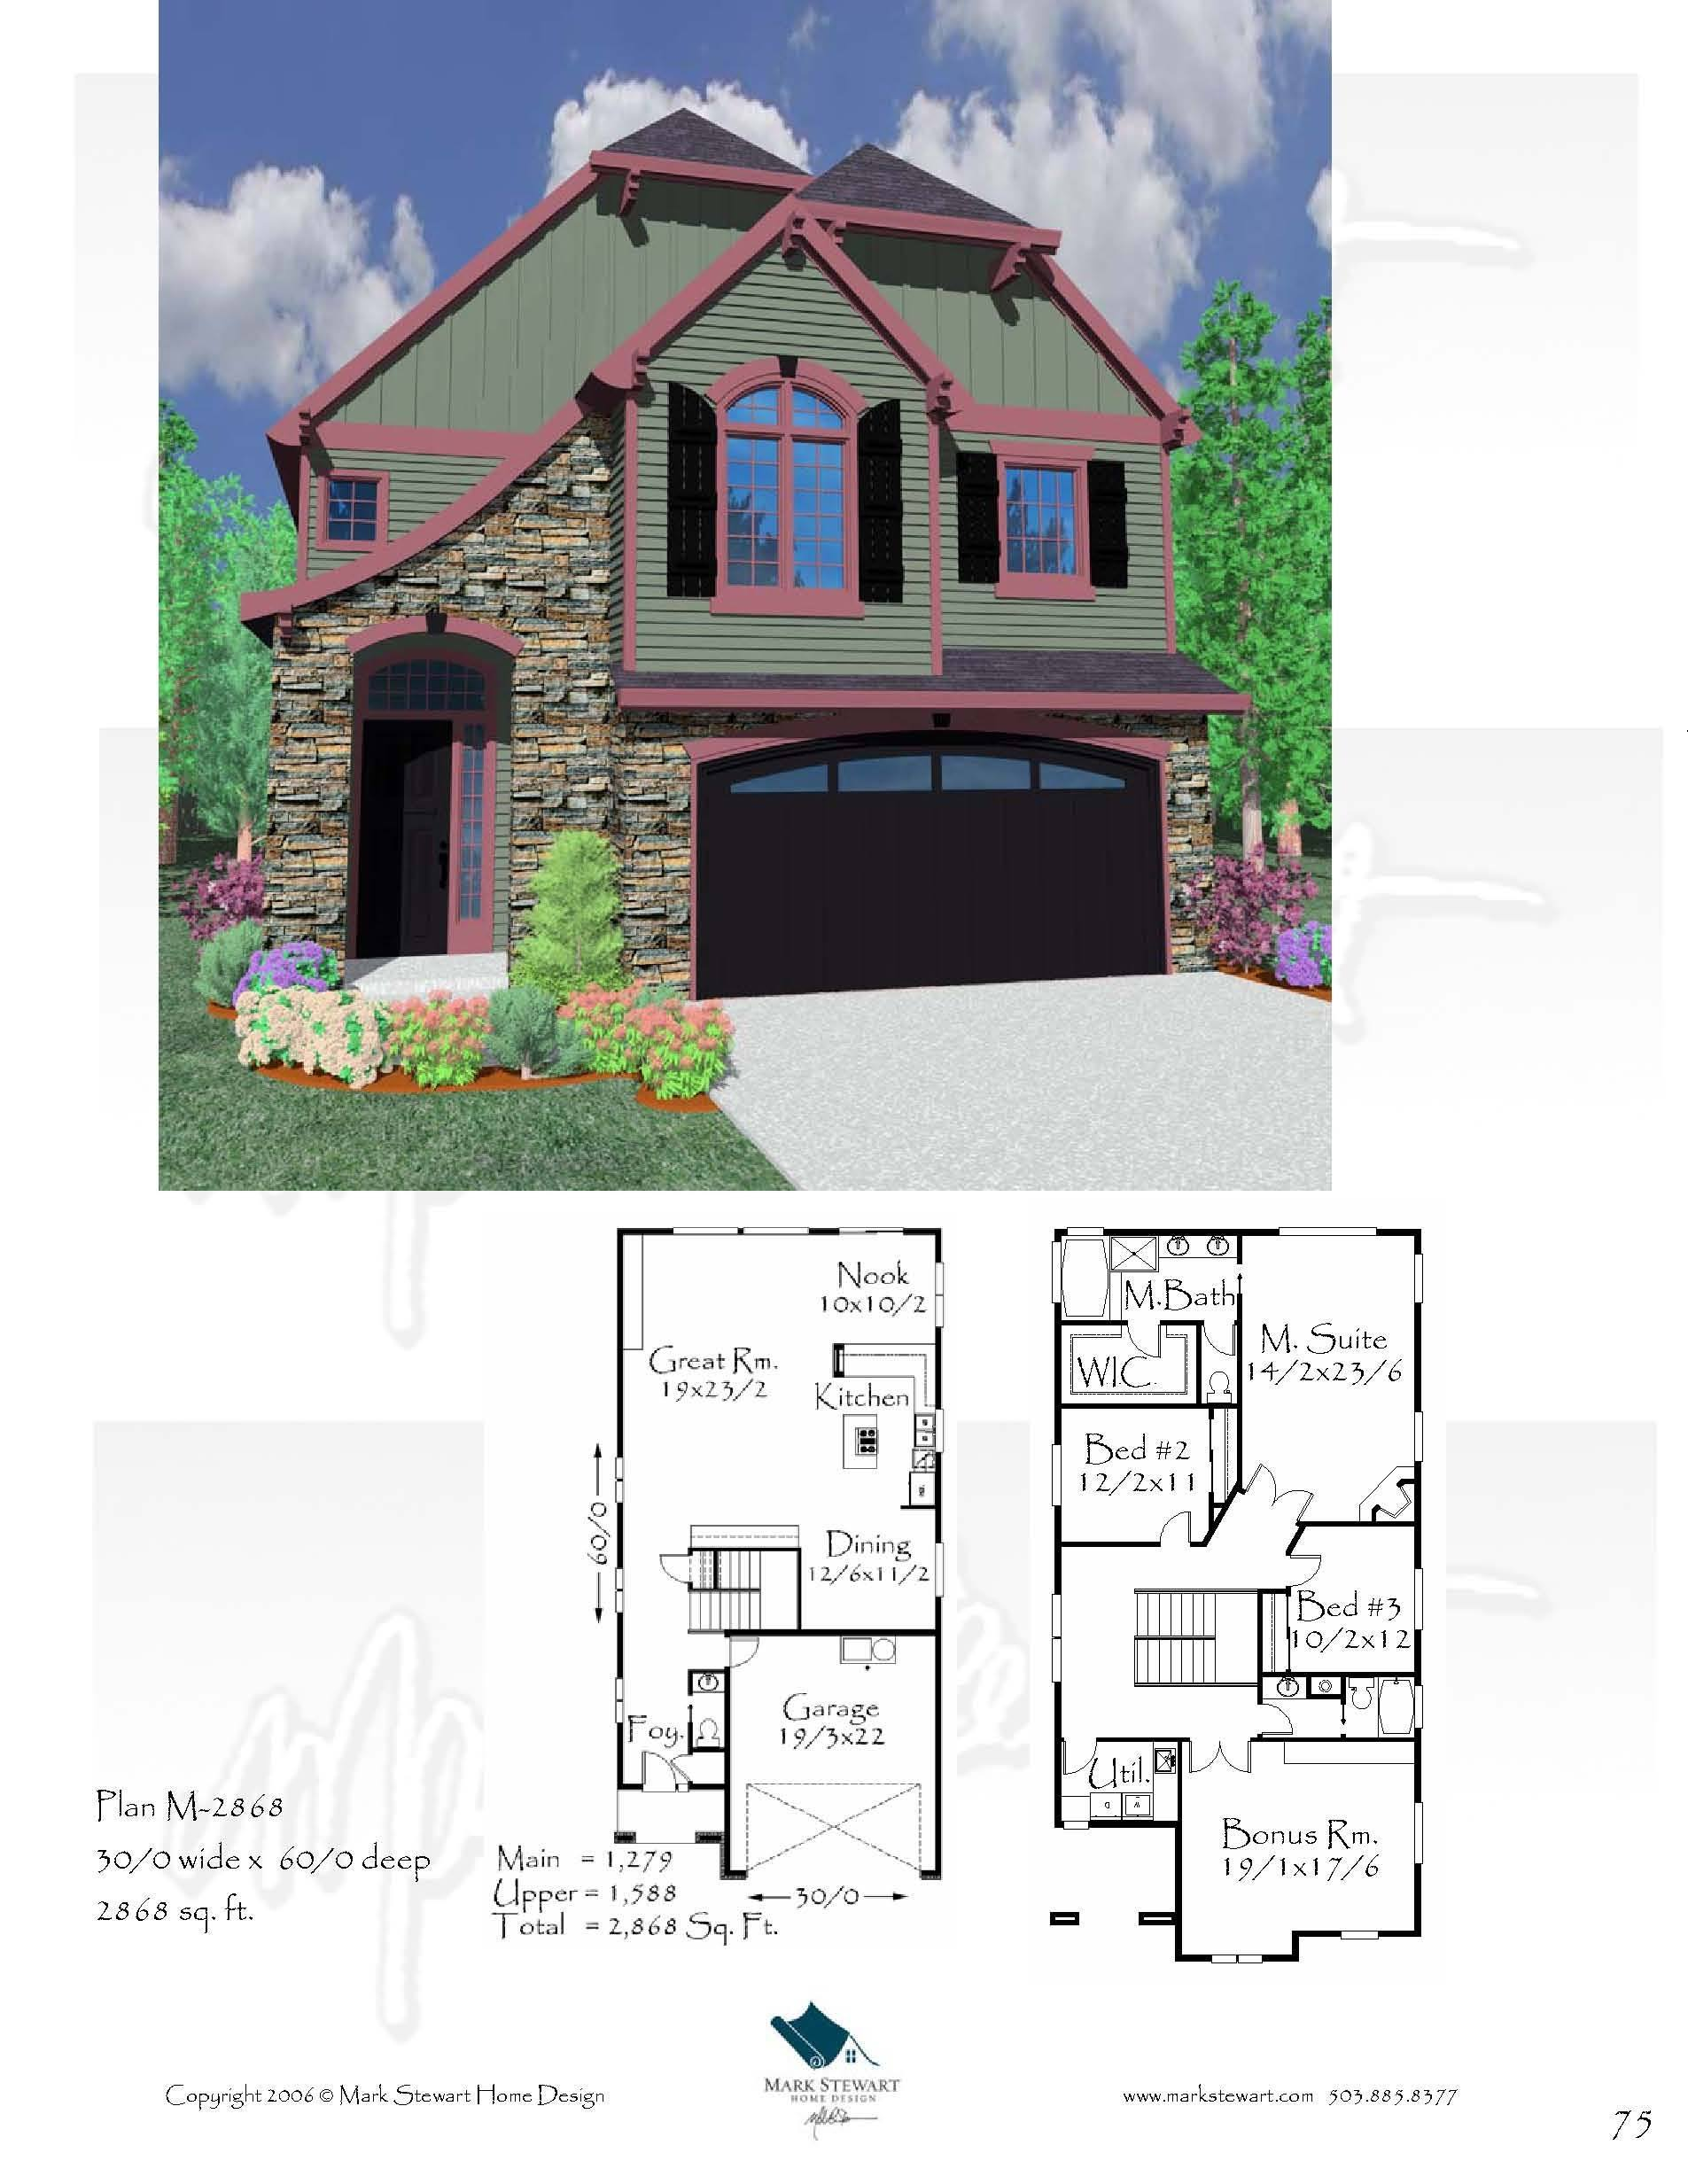 M-2868 House Plan | French Country House Plans, Old World European ...